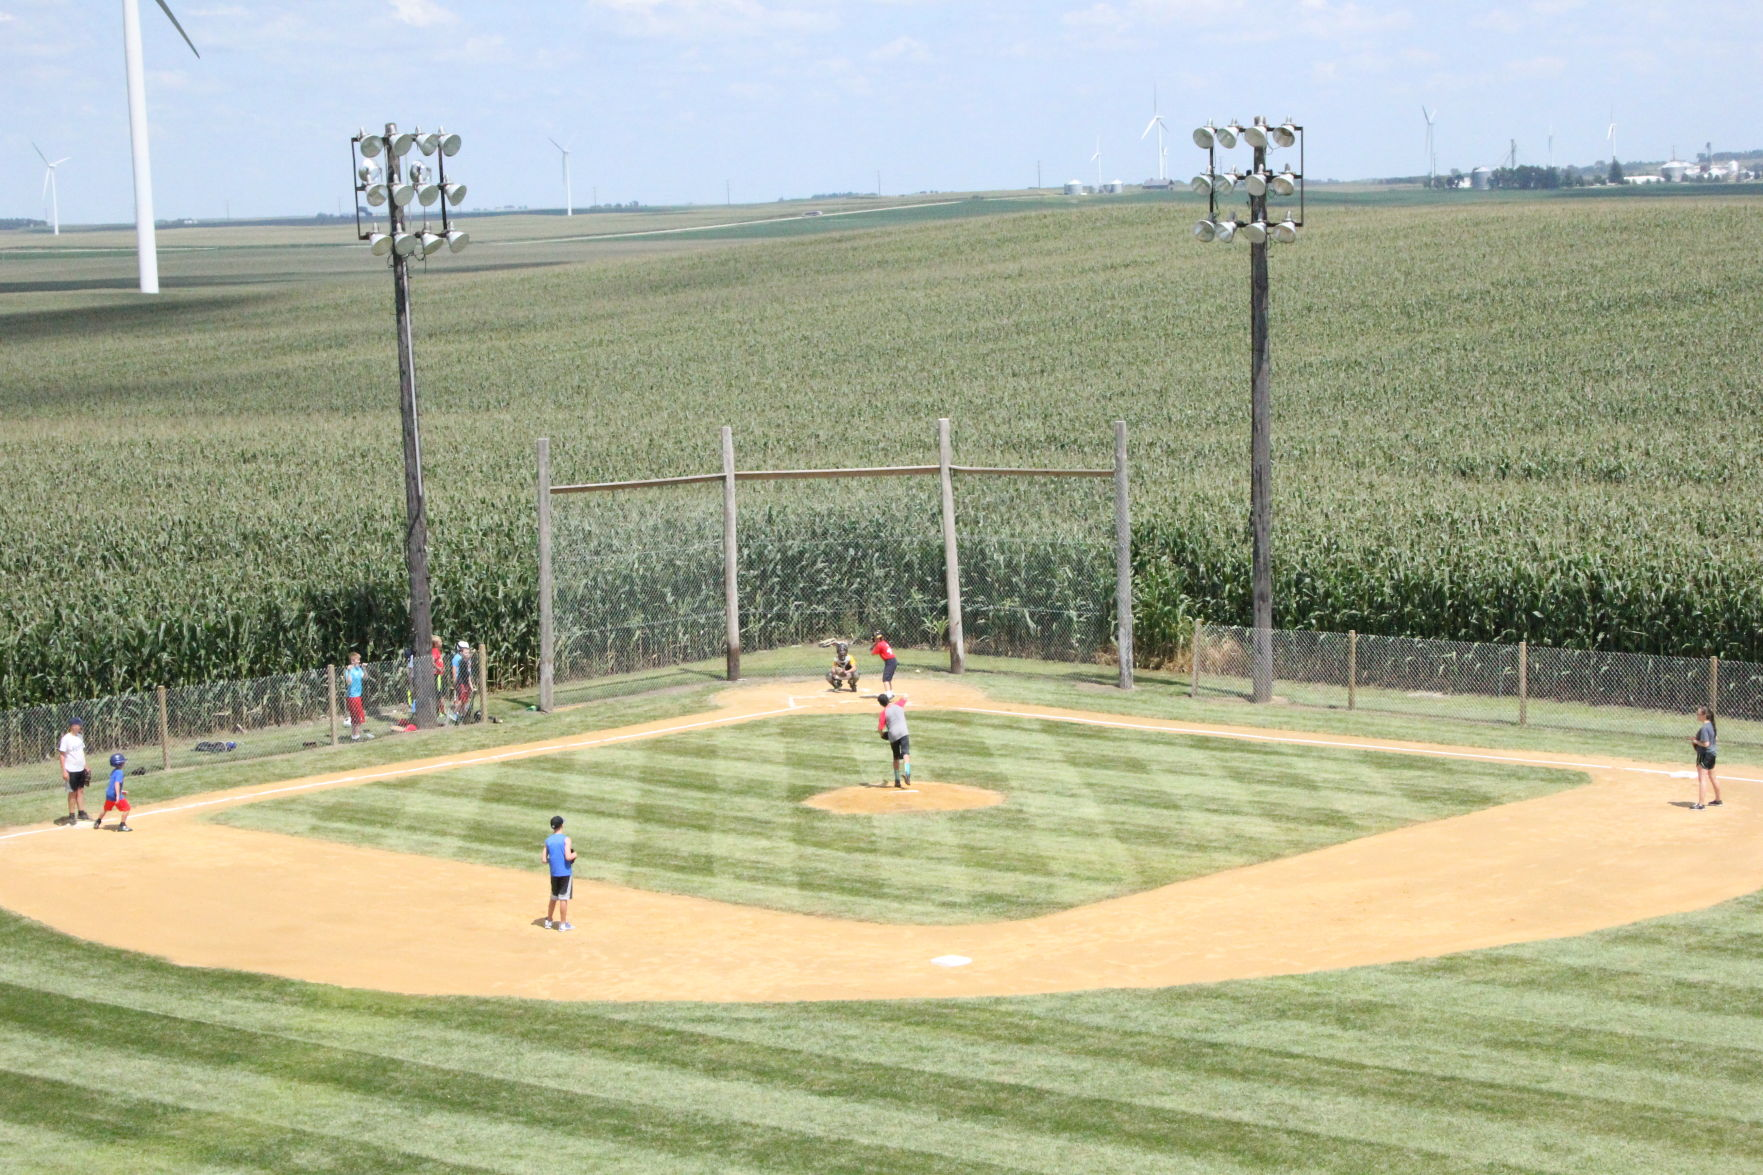 Backyard Baseball Fields rural iowa resident builds his own field of dreams at home | just in